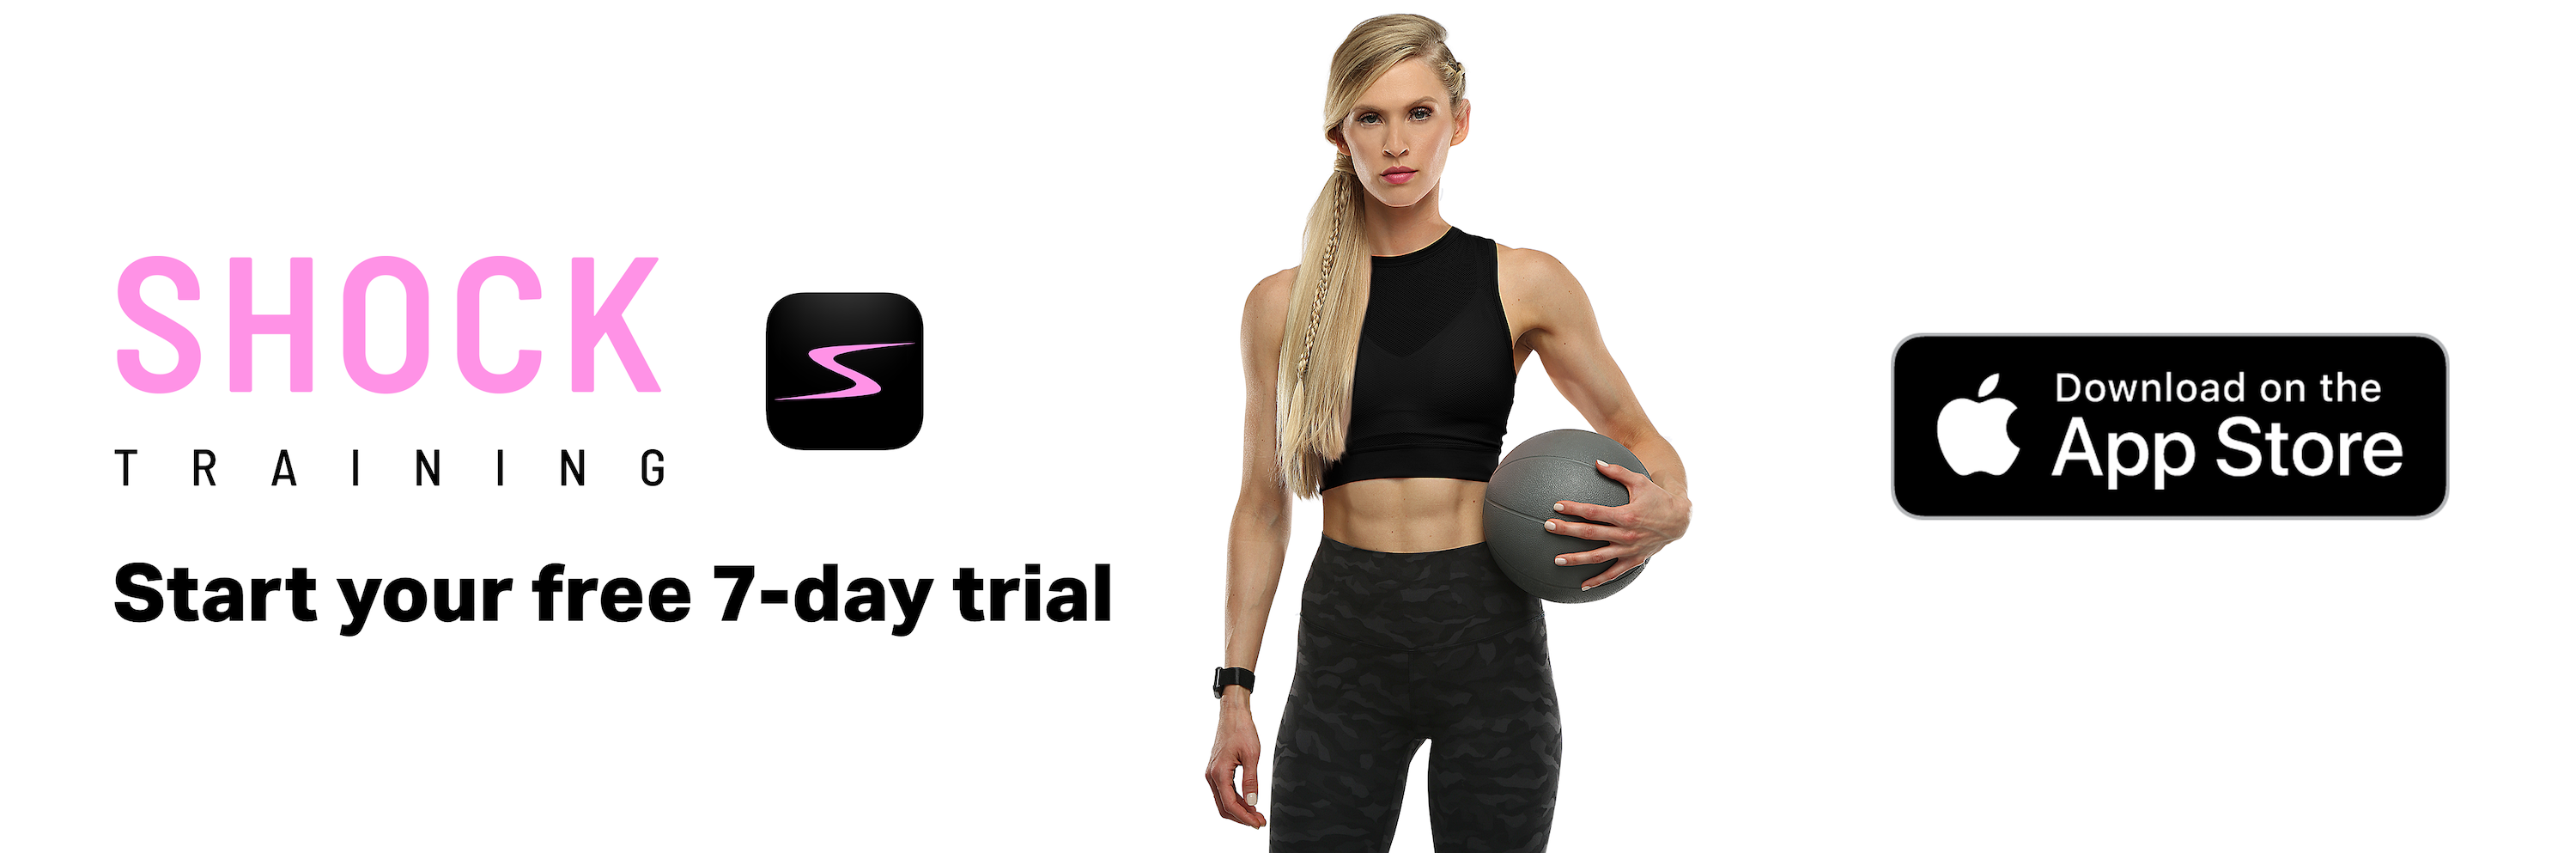 SHOCK gives women a new way to get fit, tone up, and build muscle.